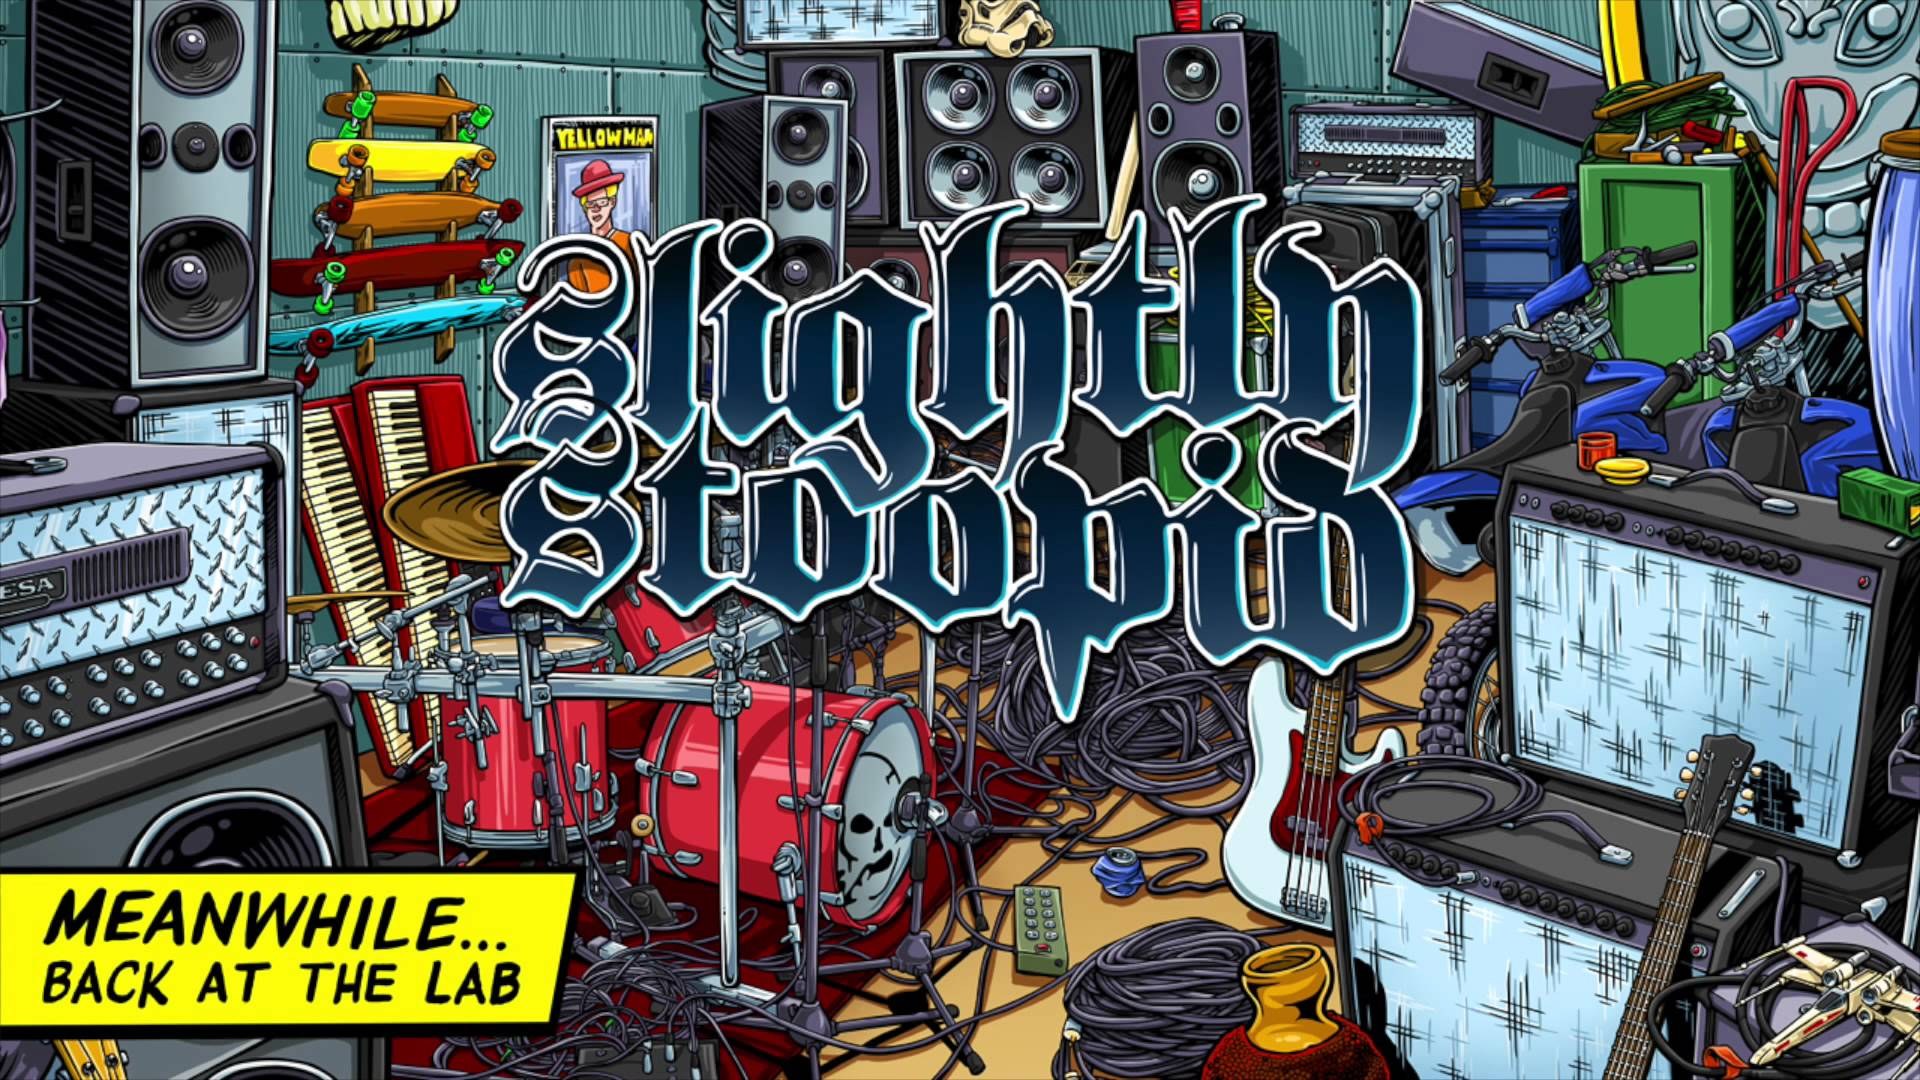 Slightly Stoopid | Meanwhile...Back at the Lab | Review